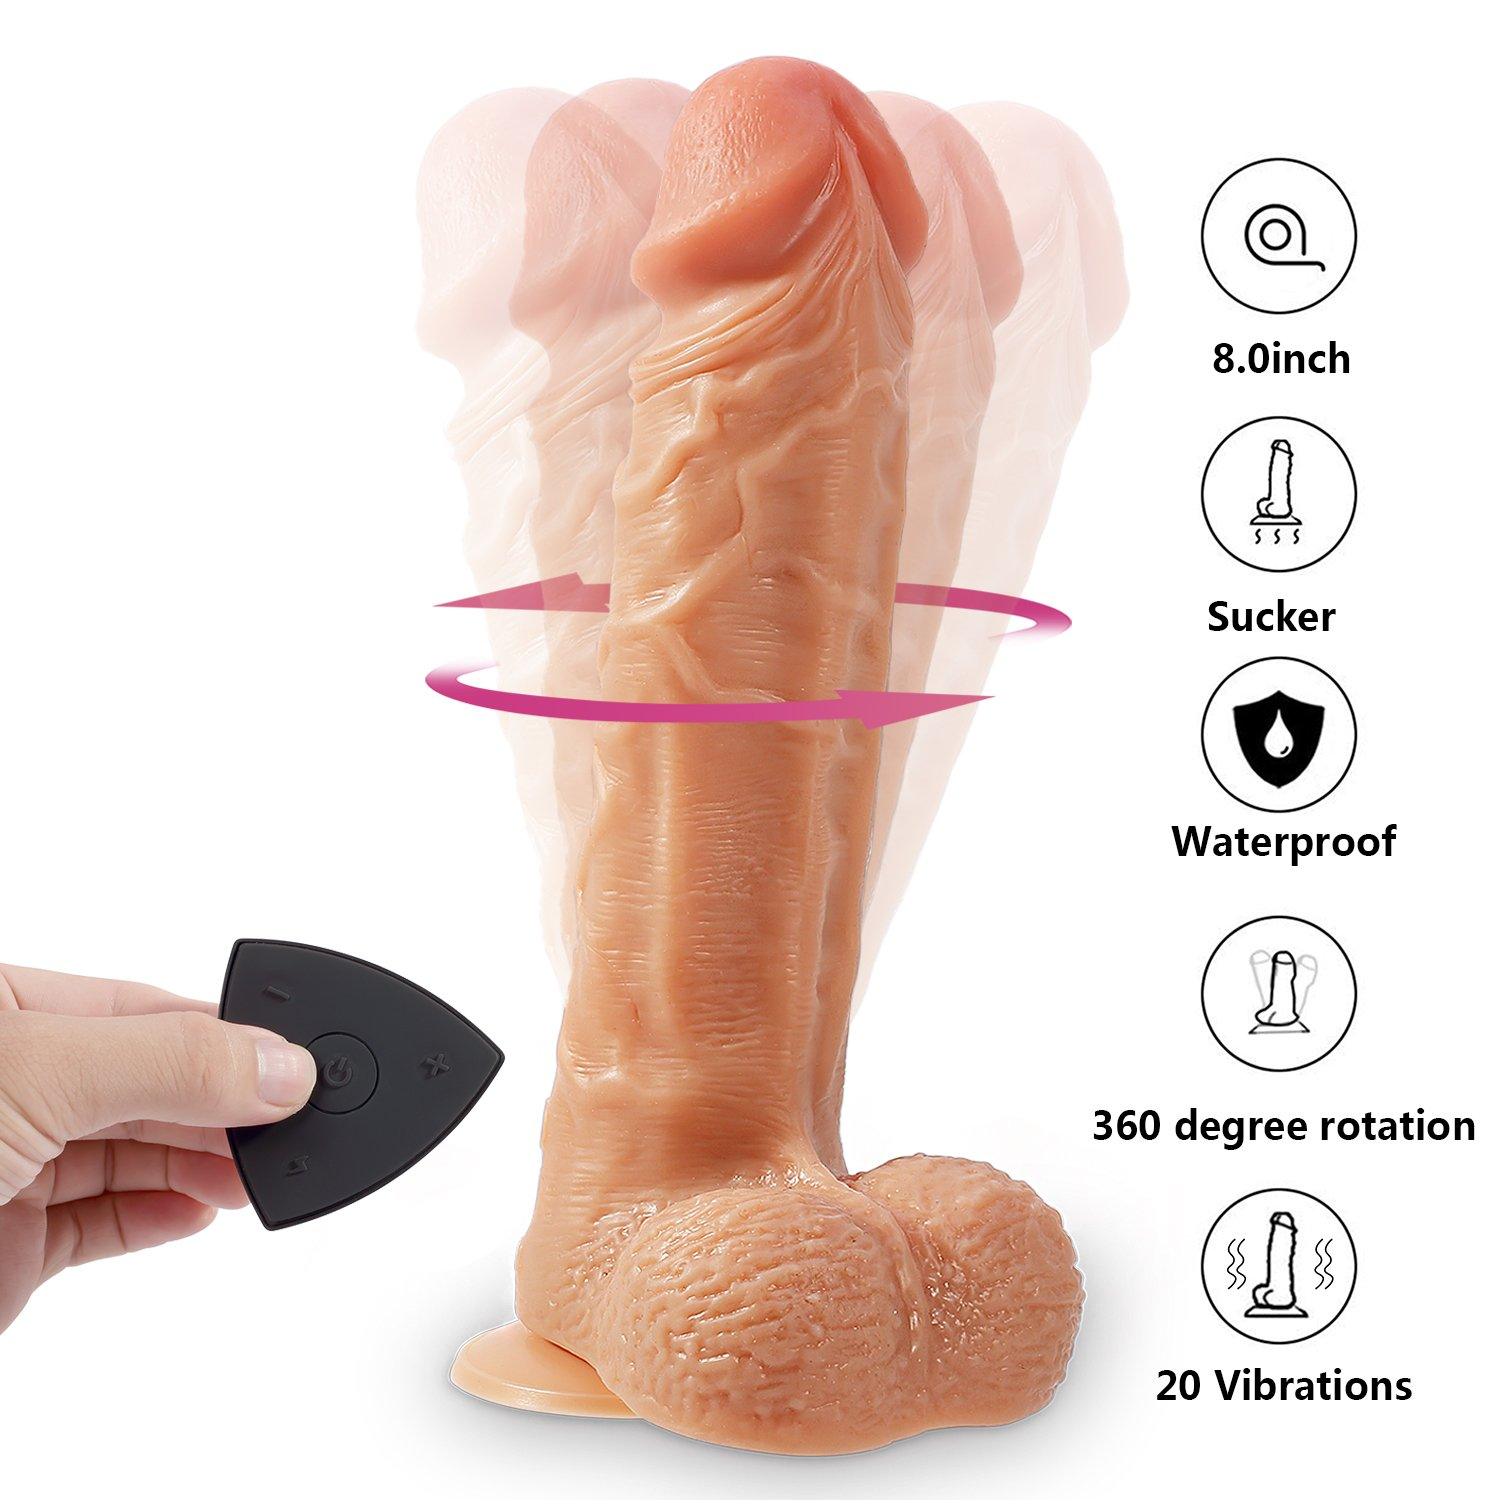 Realistic Dildos Vibrators, Proxoxo Lifelike 360°Rotation Penis, Rechargeable Waterproof Adult Toys with 20-Frequency 32ft Remote Control, Silicone Vibrating Dildo for Sex Vaginal G-spot Anal Play